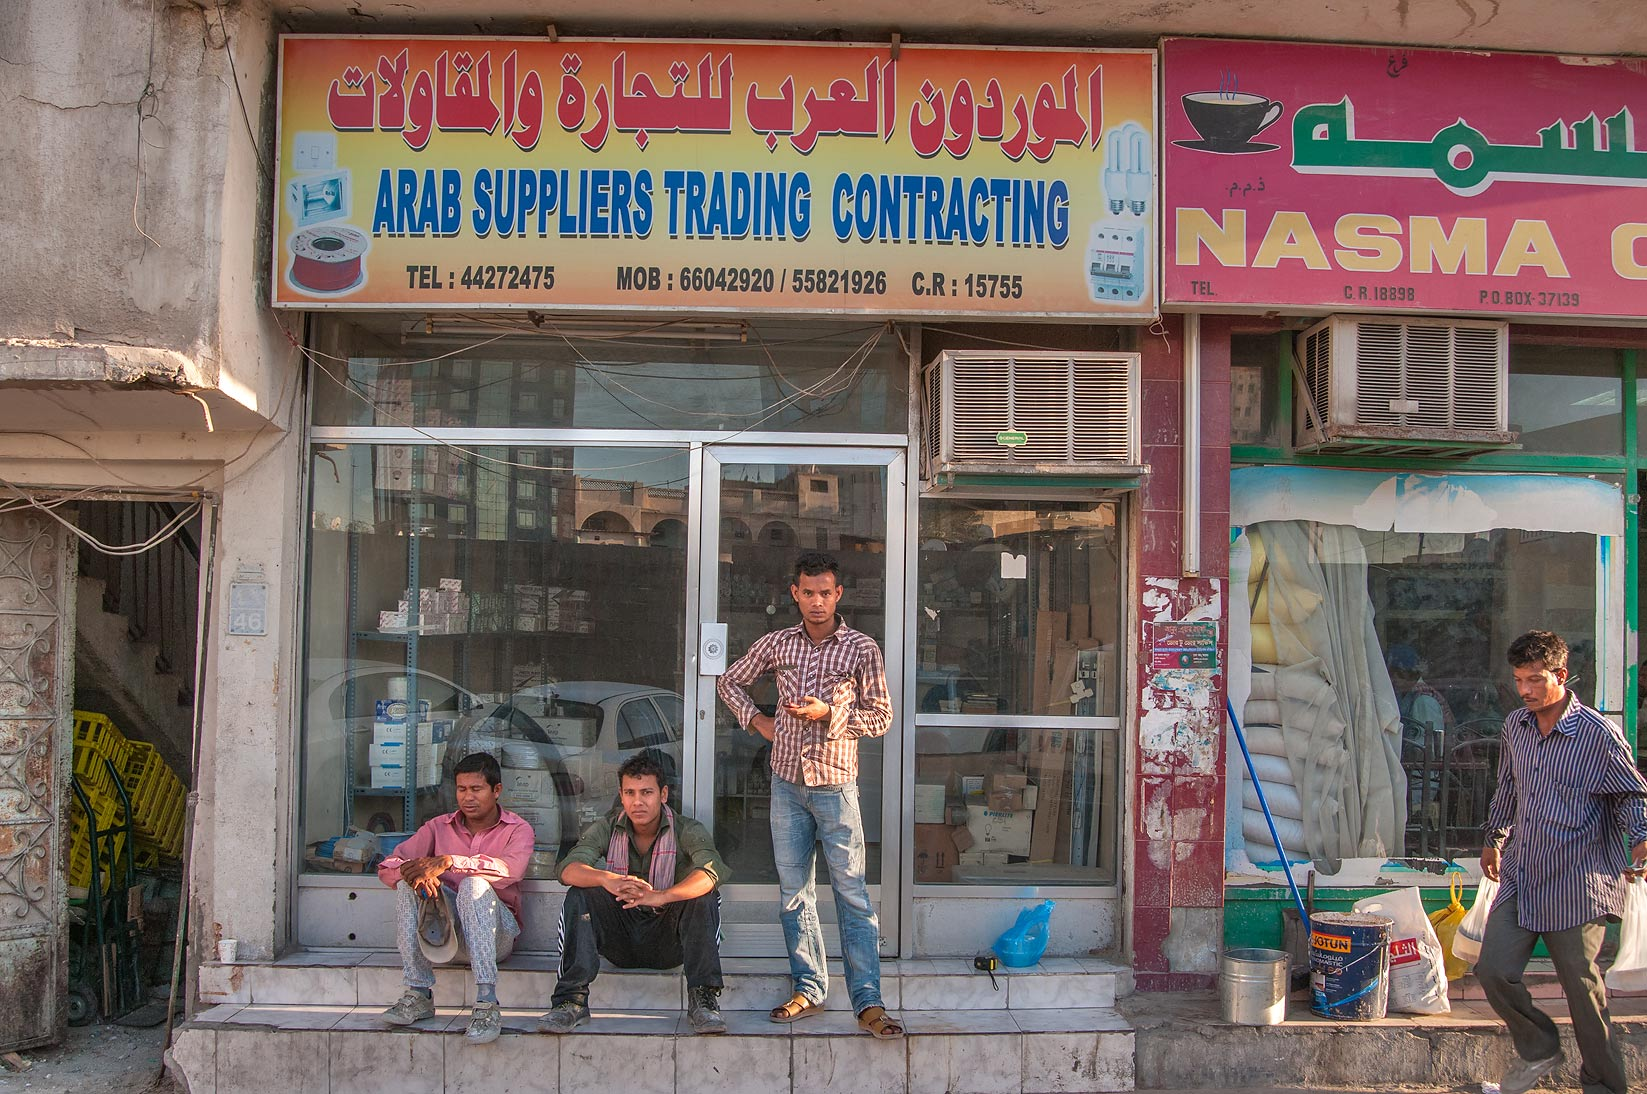 Arab Suppliers Trading Contracting at Al Maymoun St., Musheirib area. Doha, Qatar